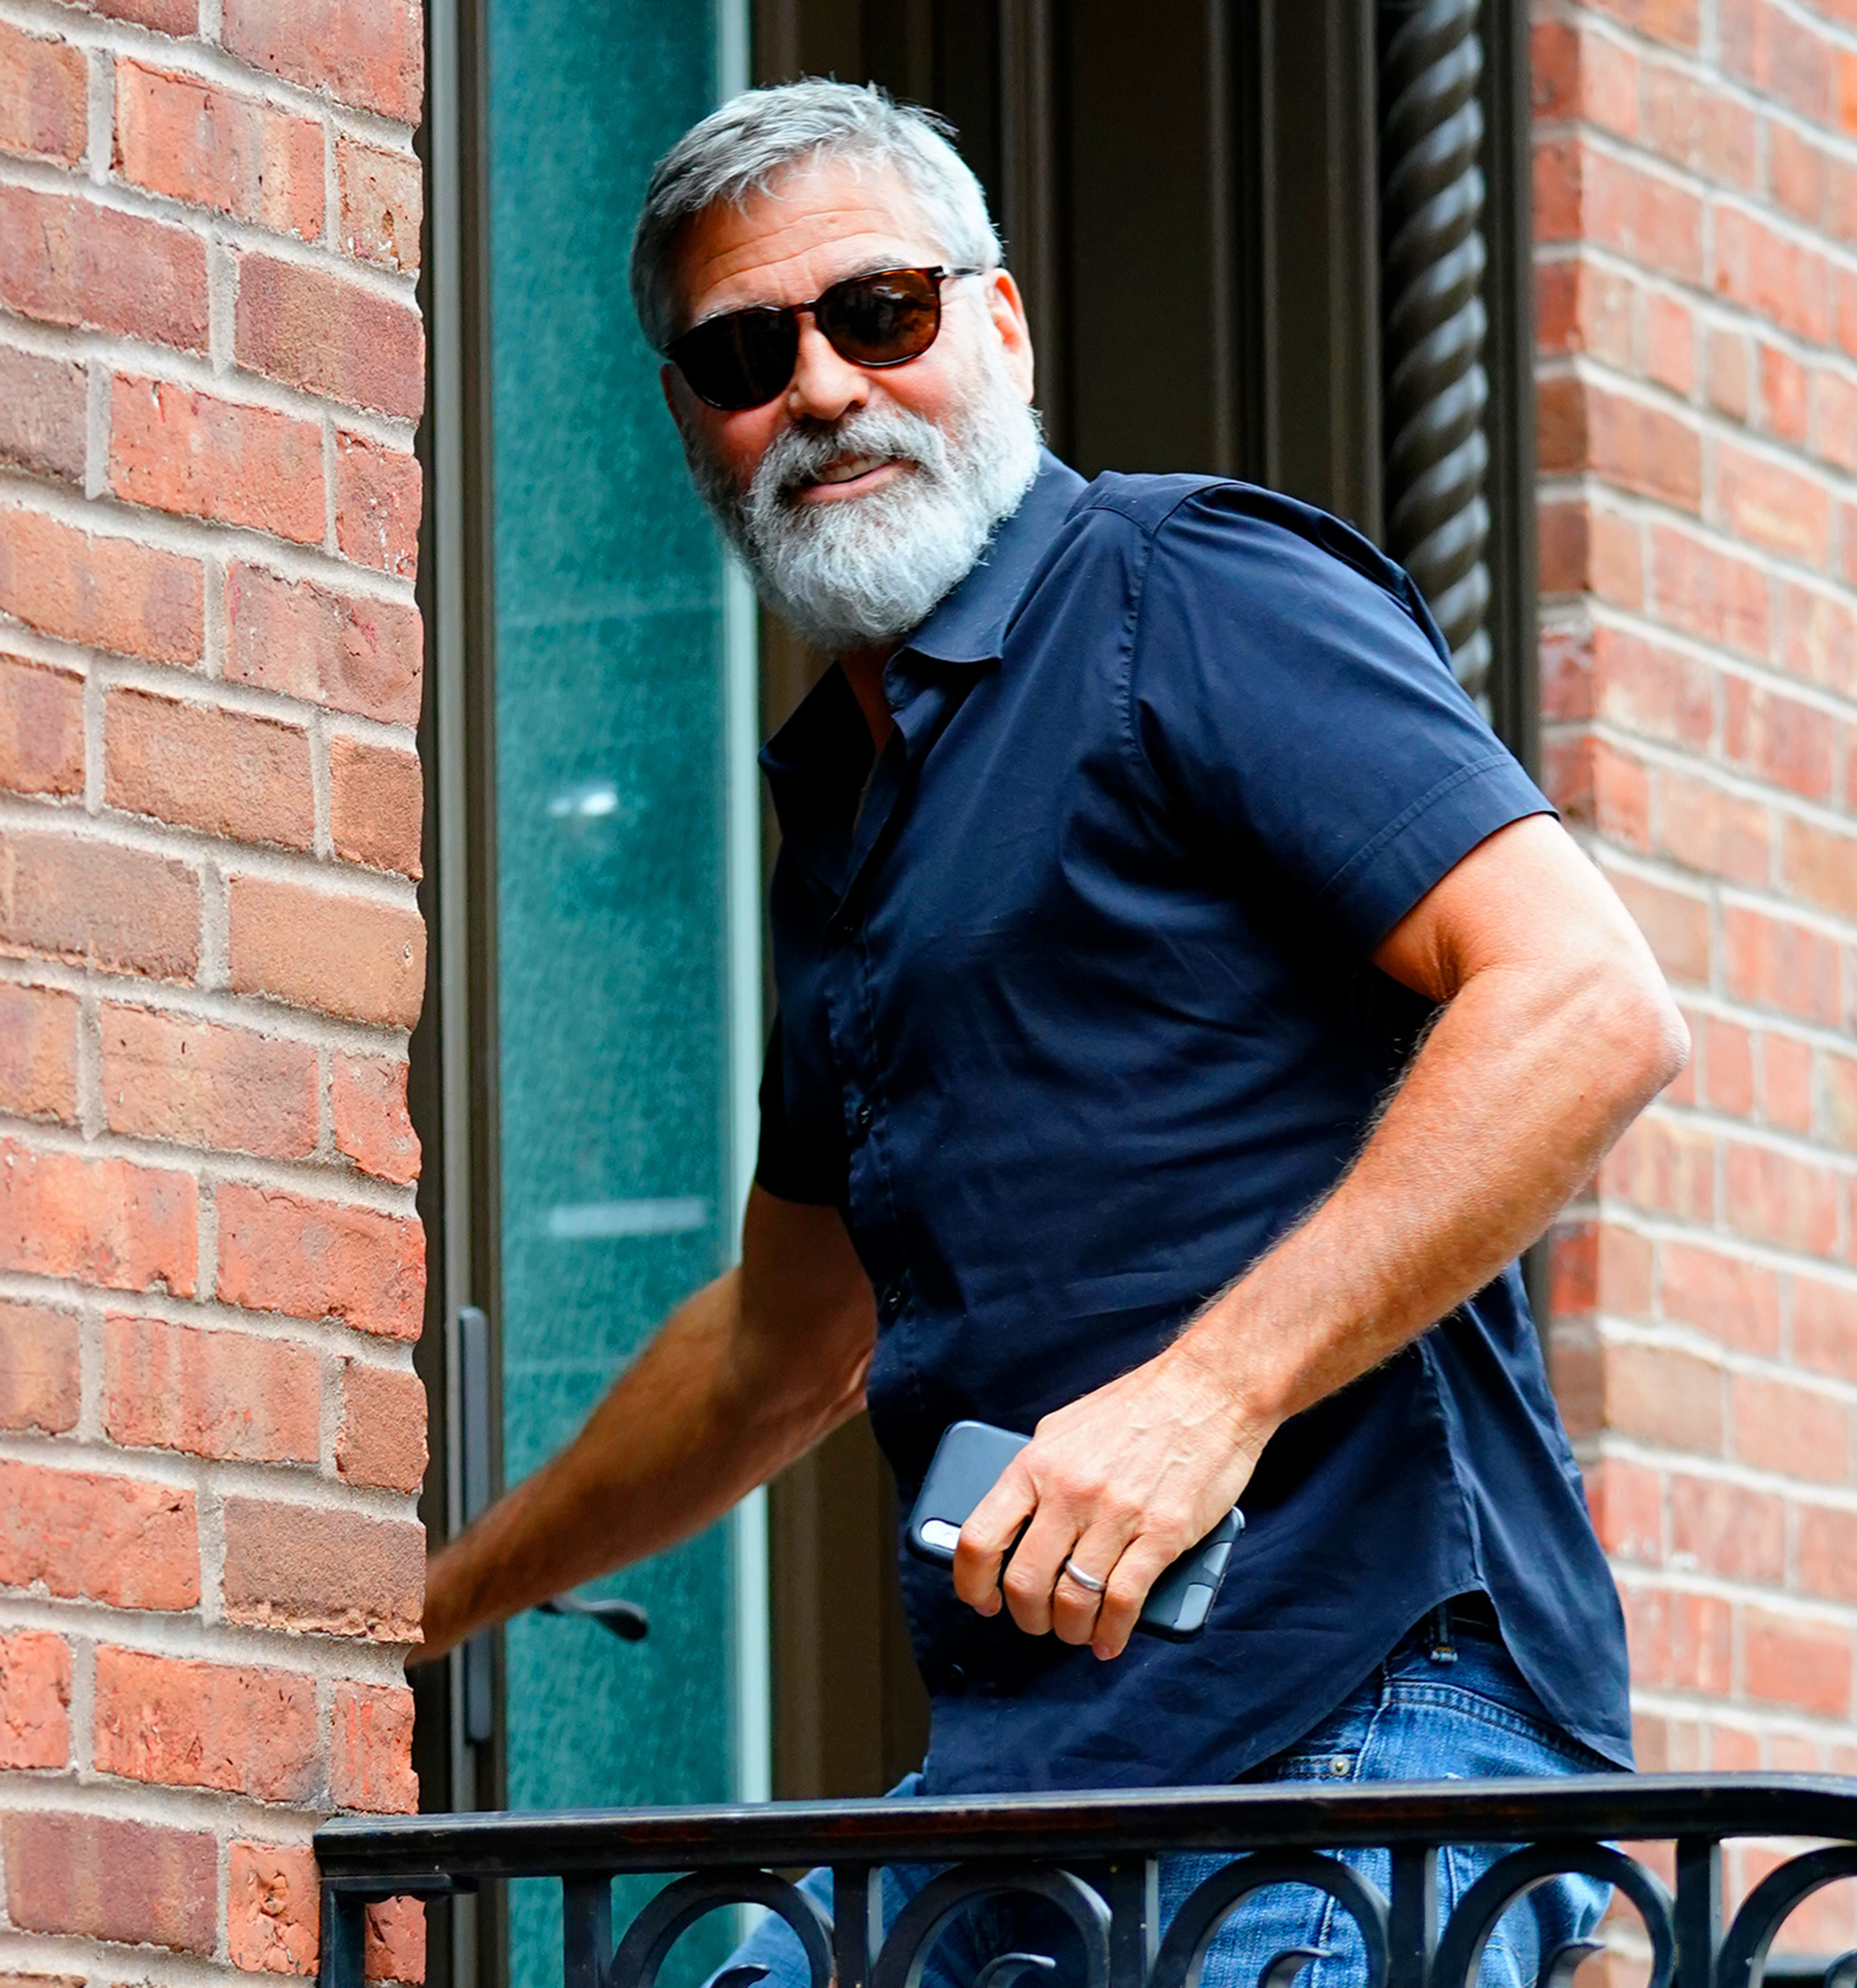 George Clooney entering a building